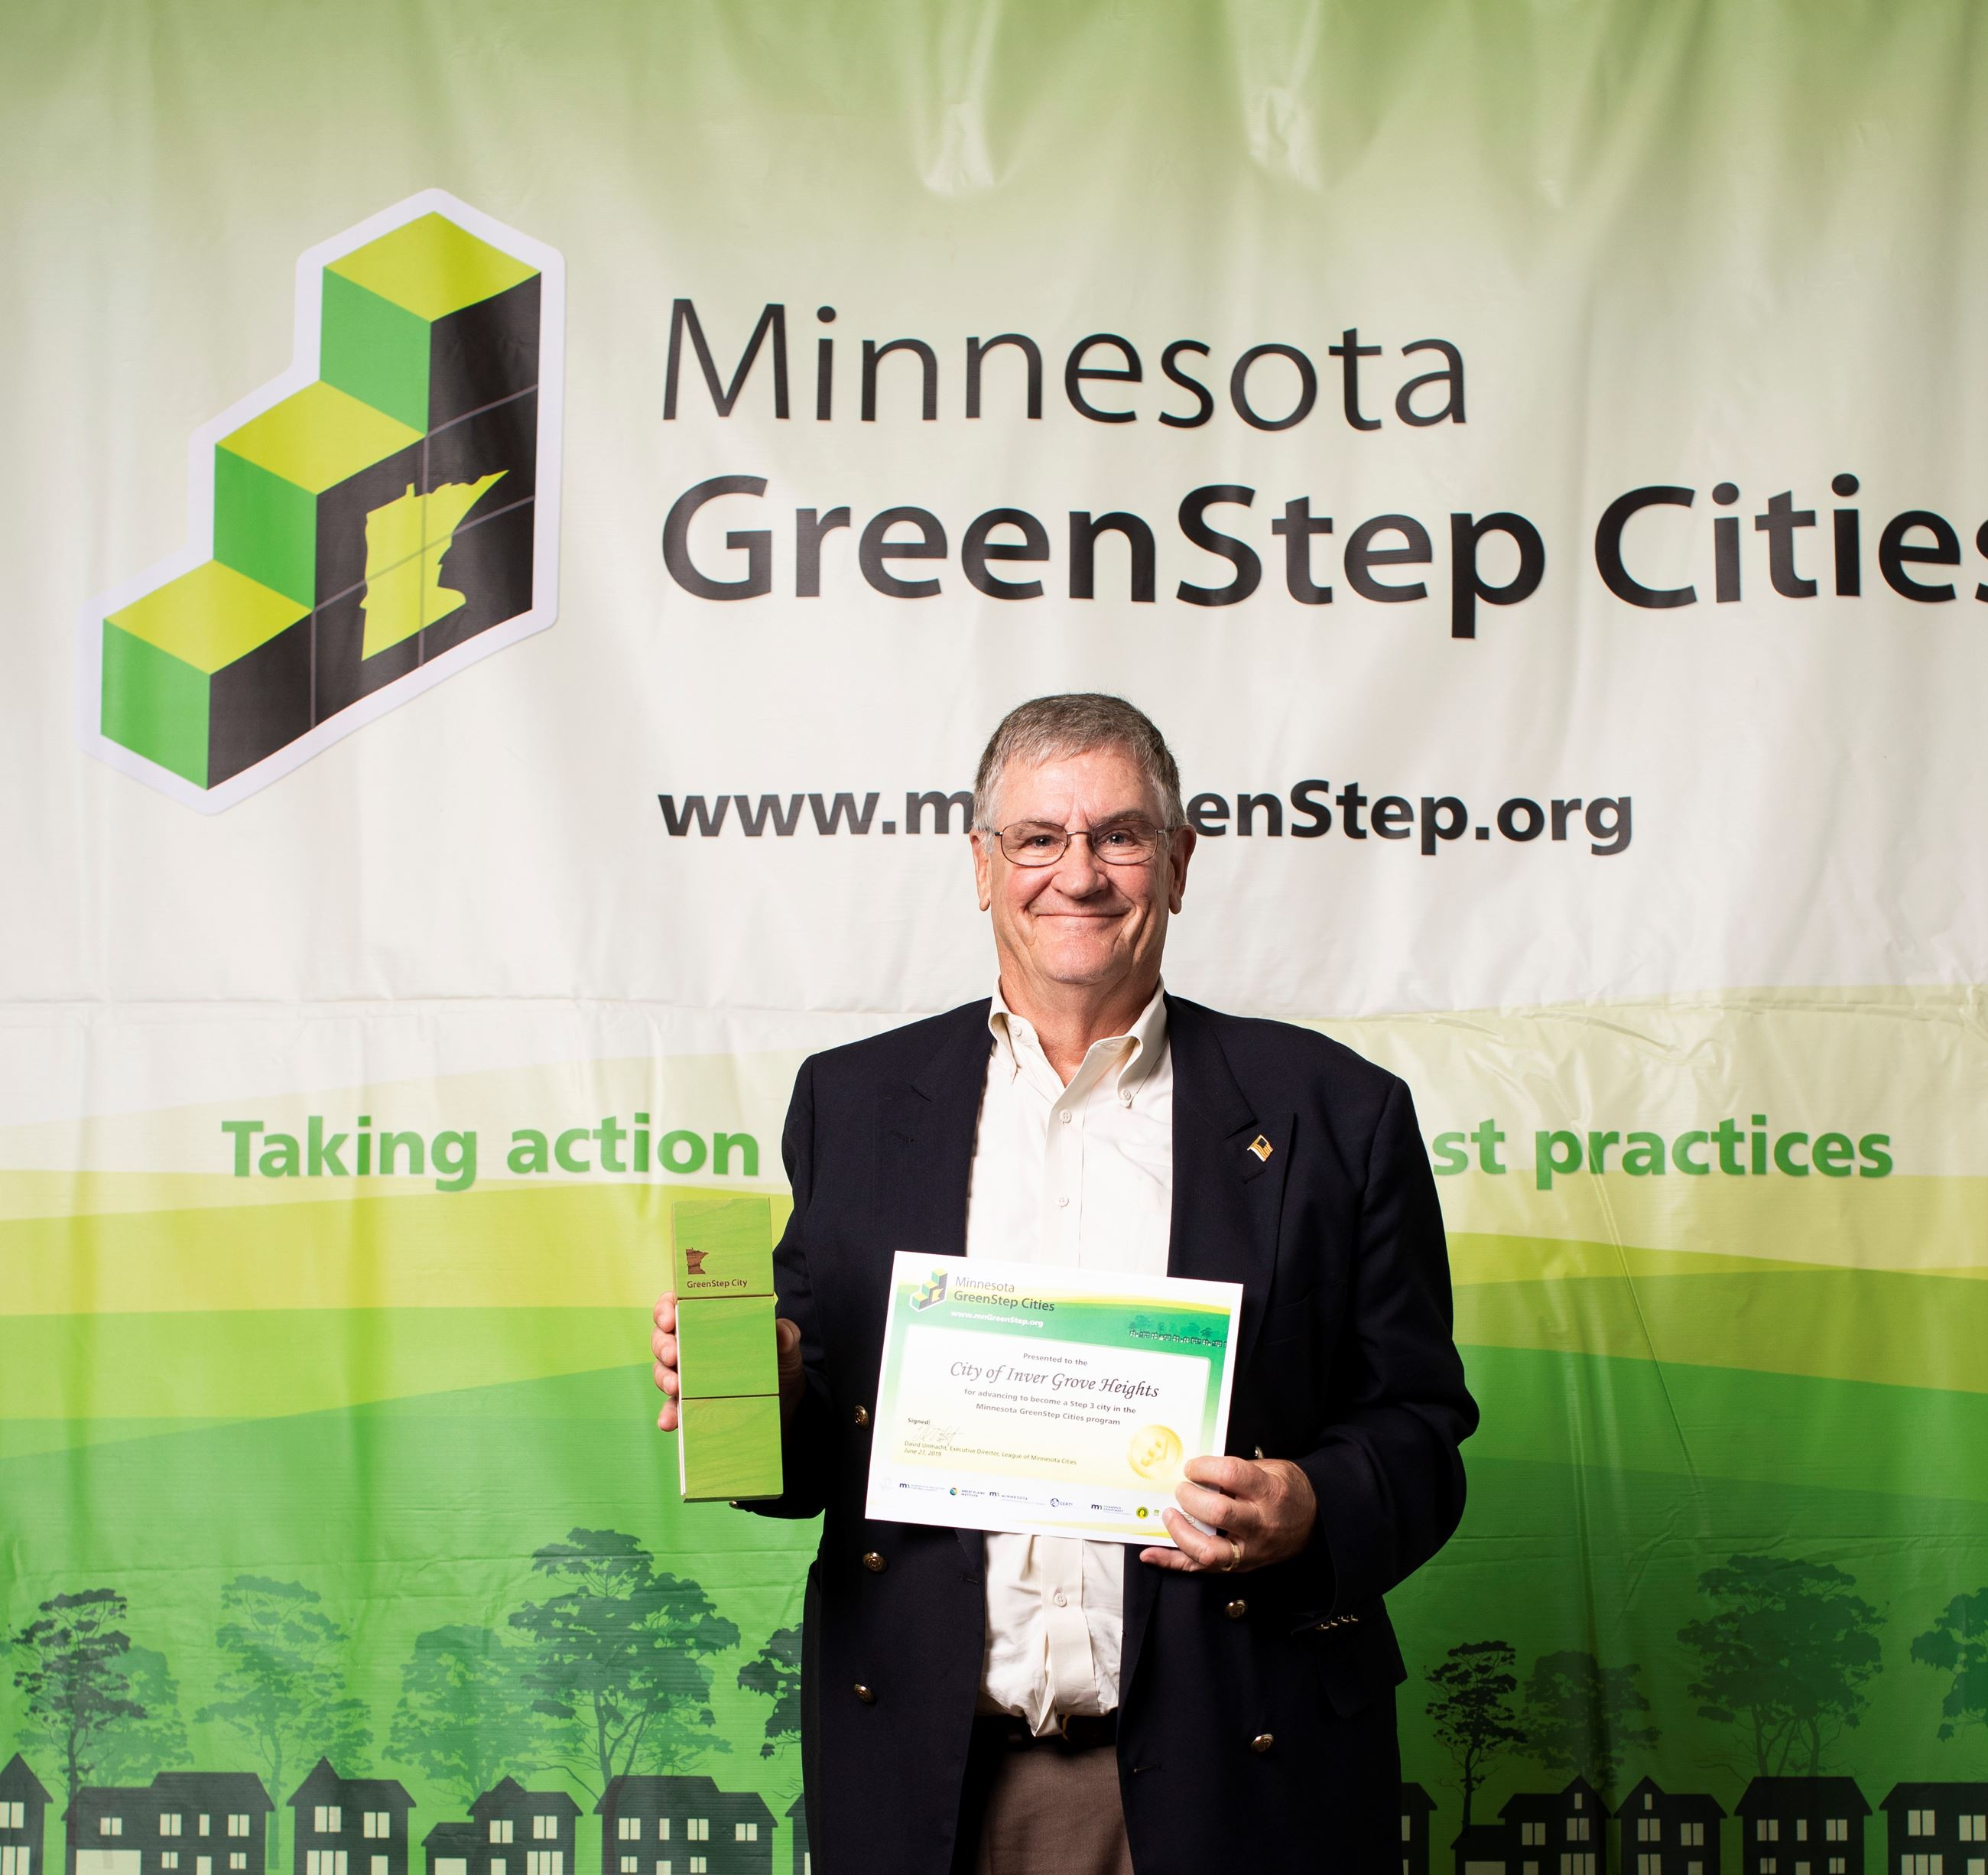 IGH Greenstep Cities Step 3 Award